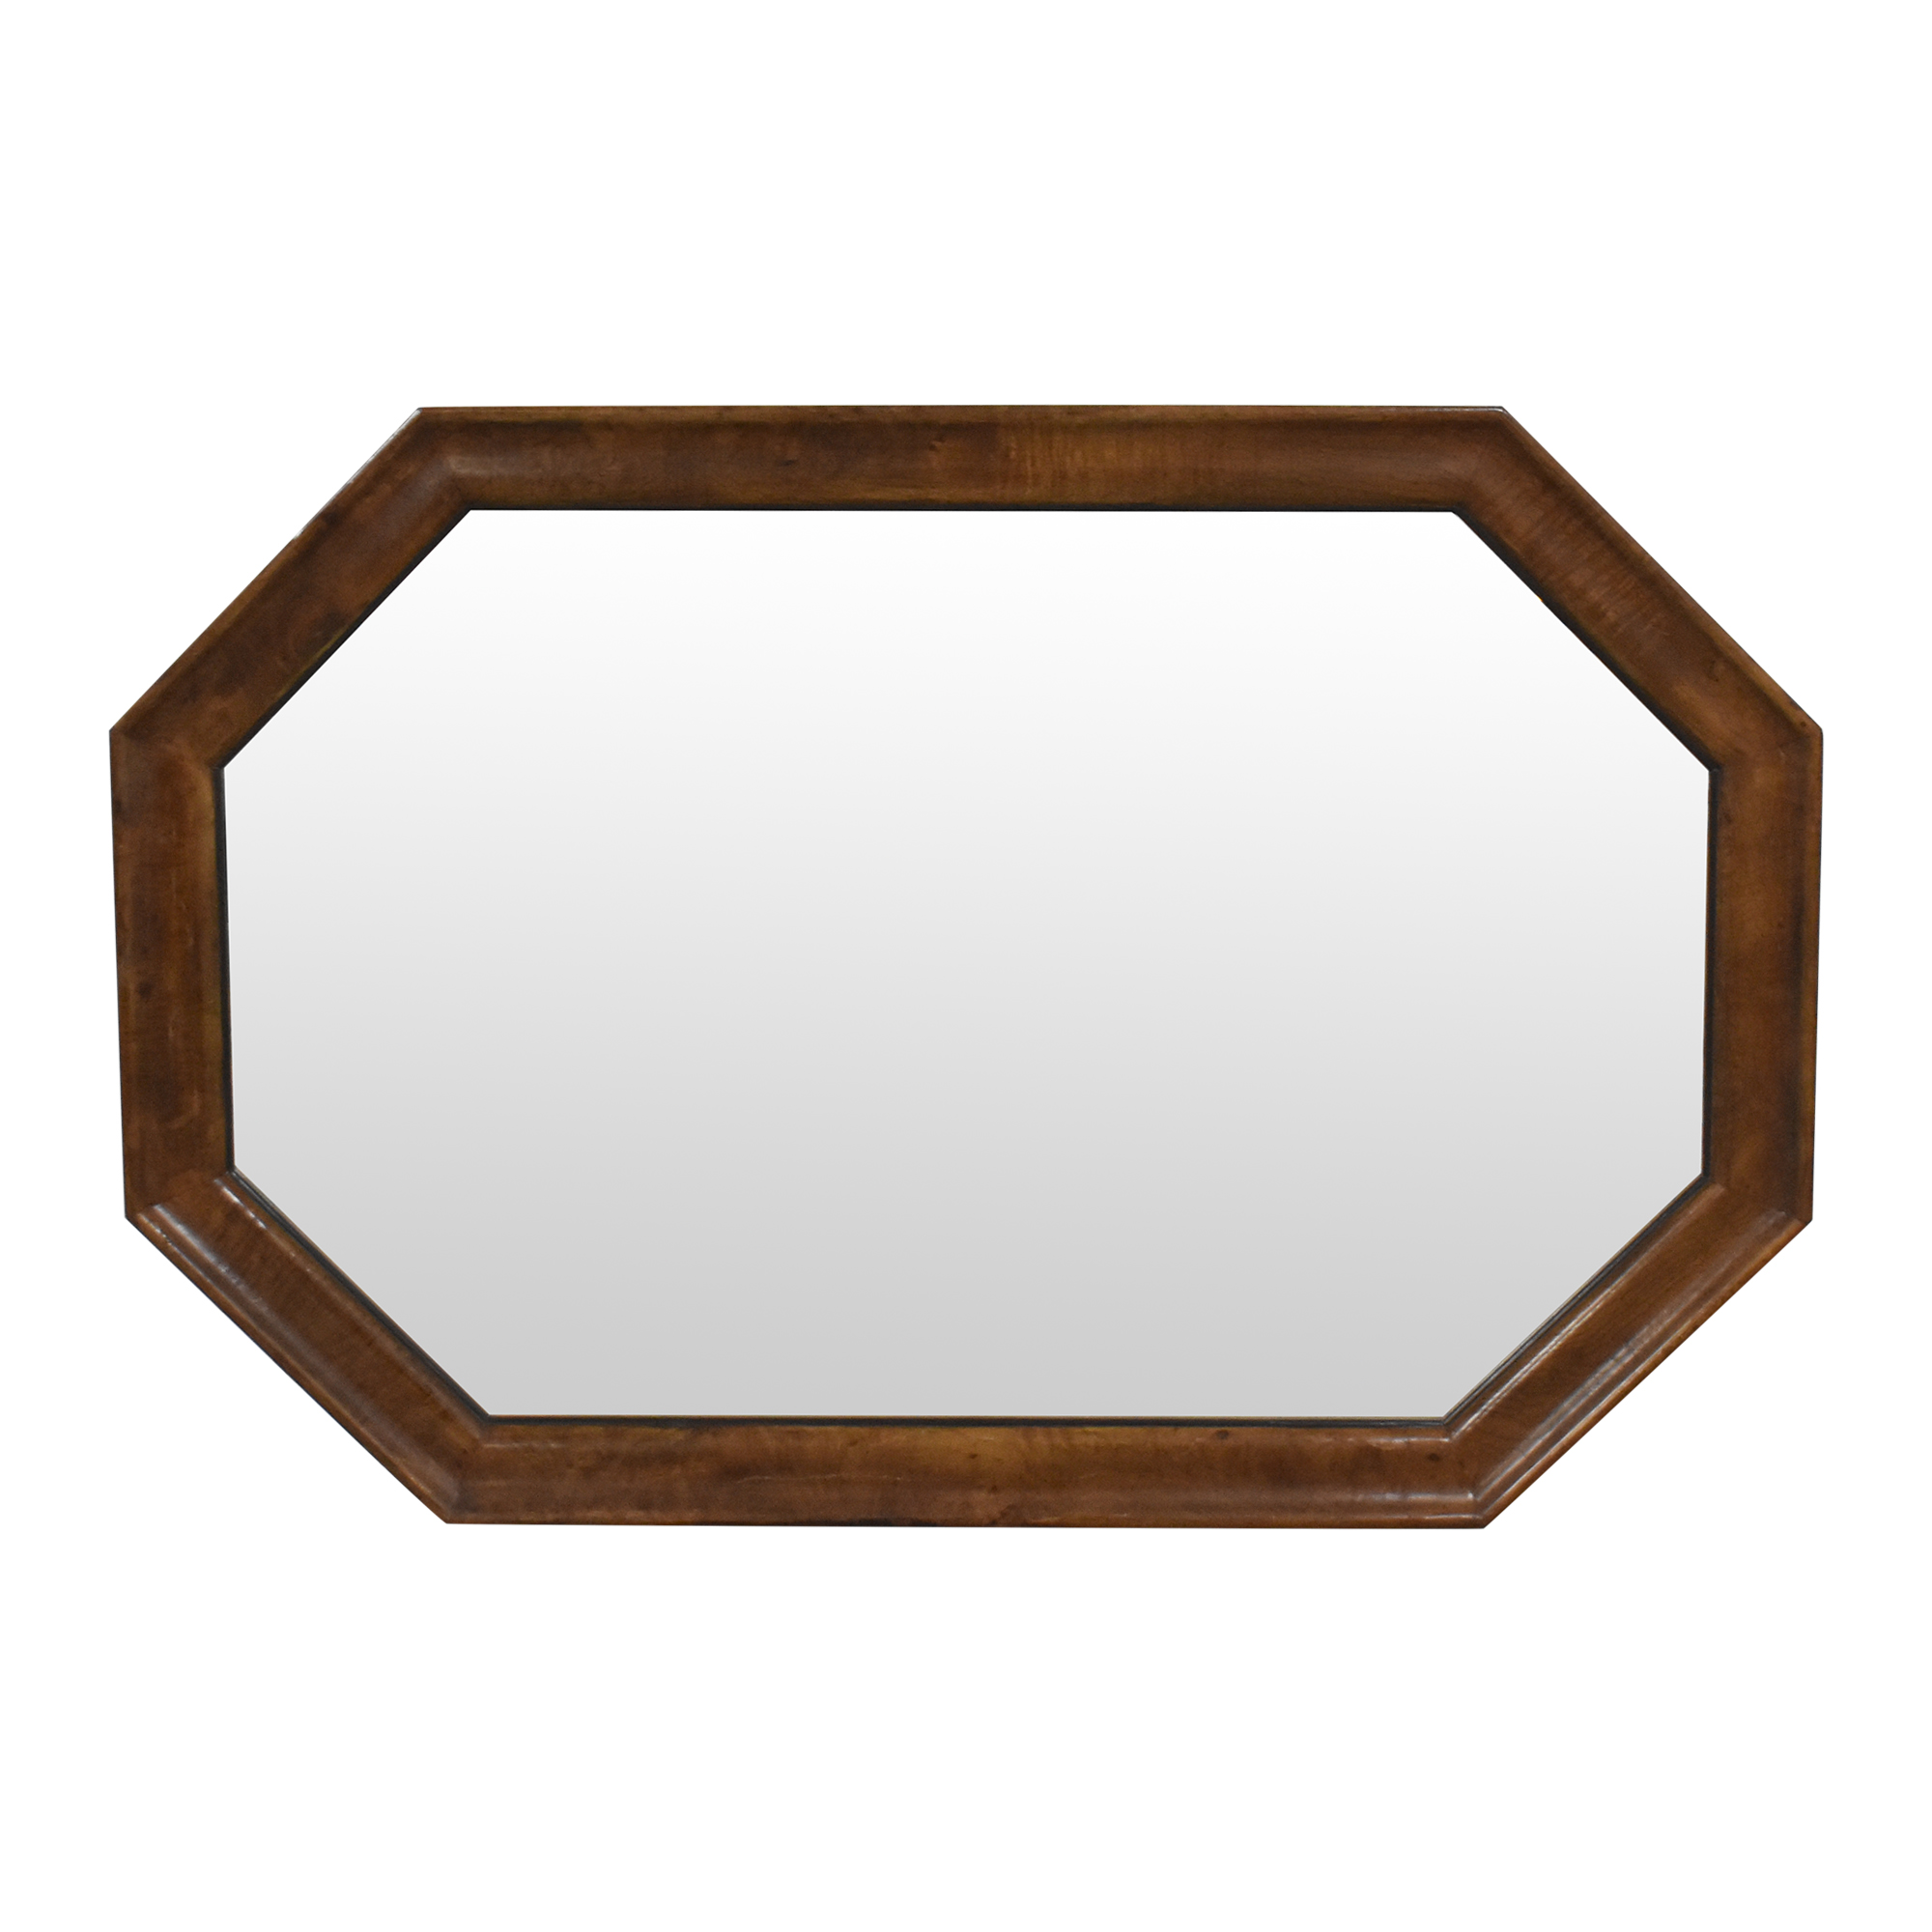 Henredon Furniture Henredon Framed Wall Mirror ma